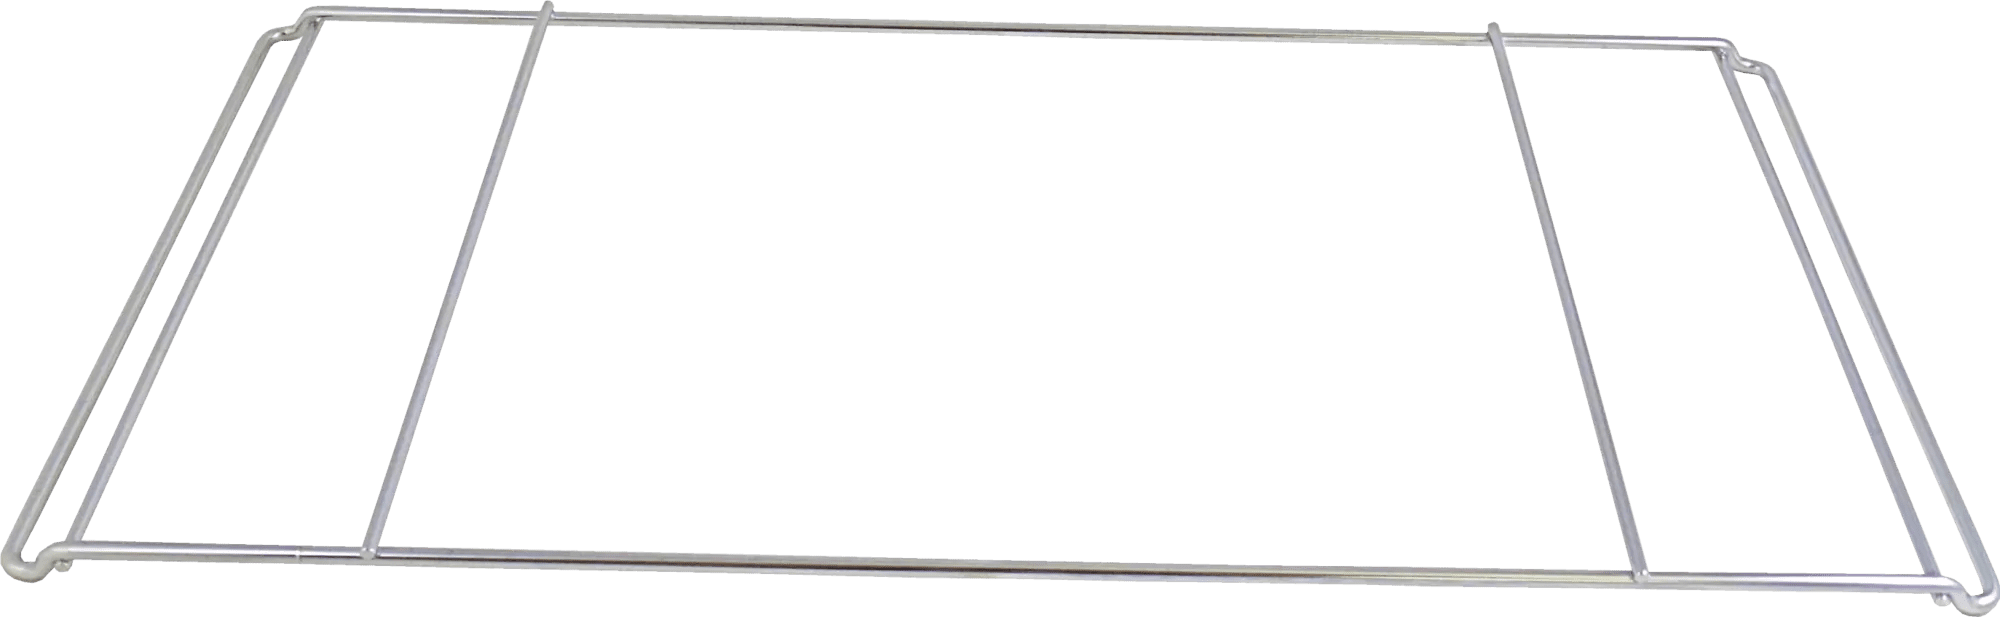 GaggenauWire Rack Ps075001